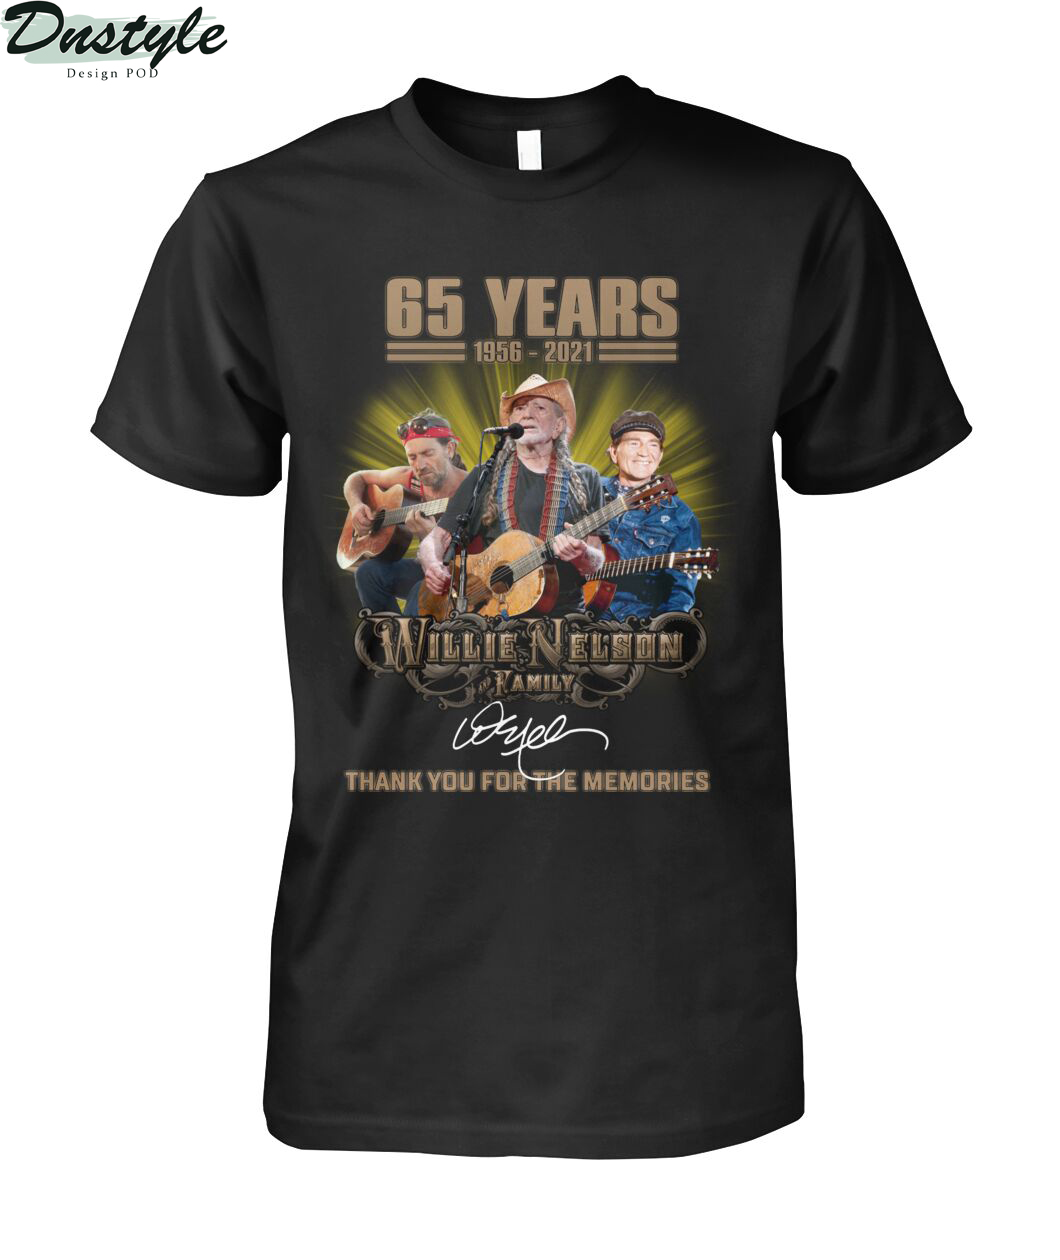 65 years Willie Nelson family thank you for the memories shirt